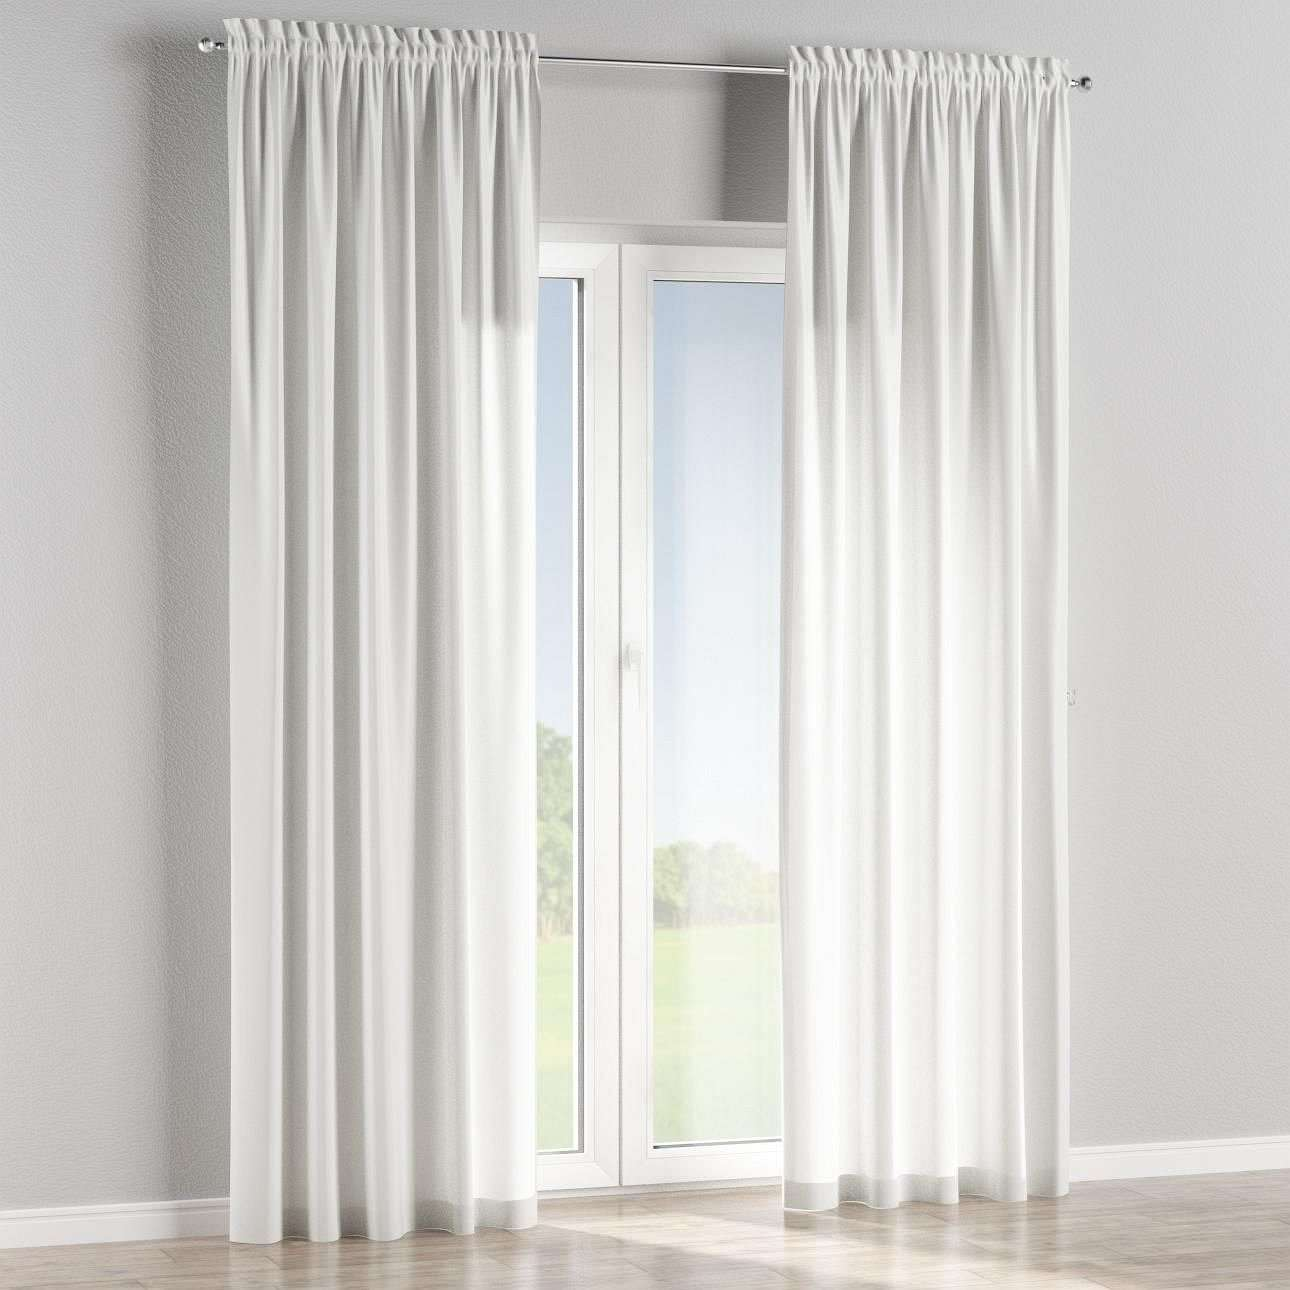 Slot and frill curtains in collection Mirella, fabric: 142-06